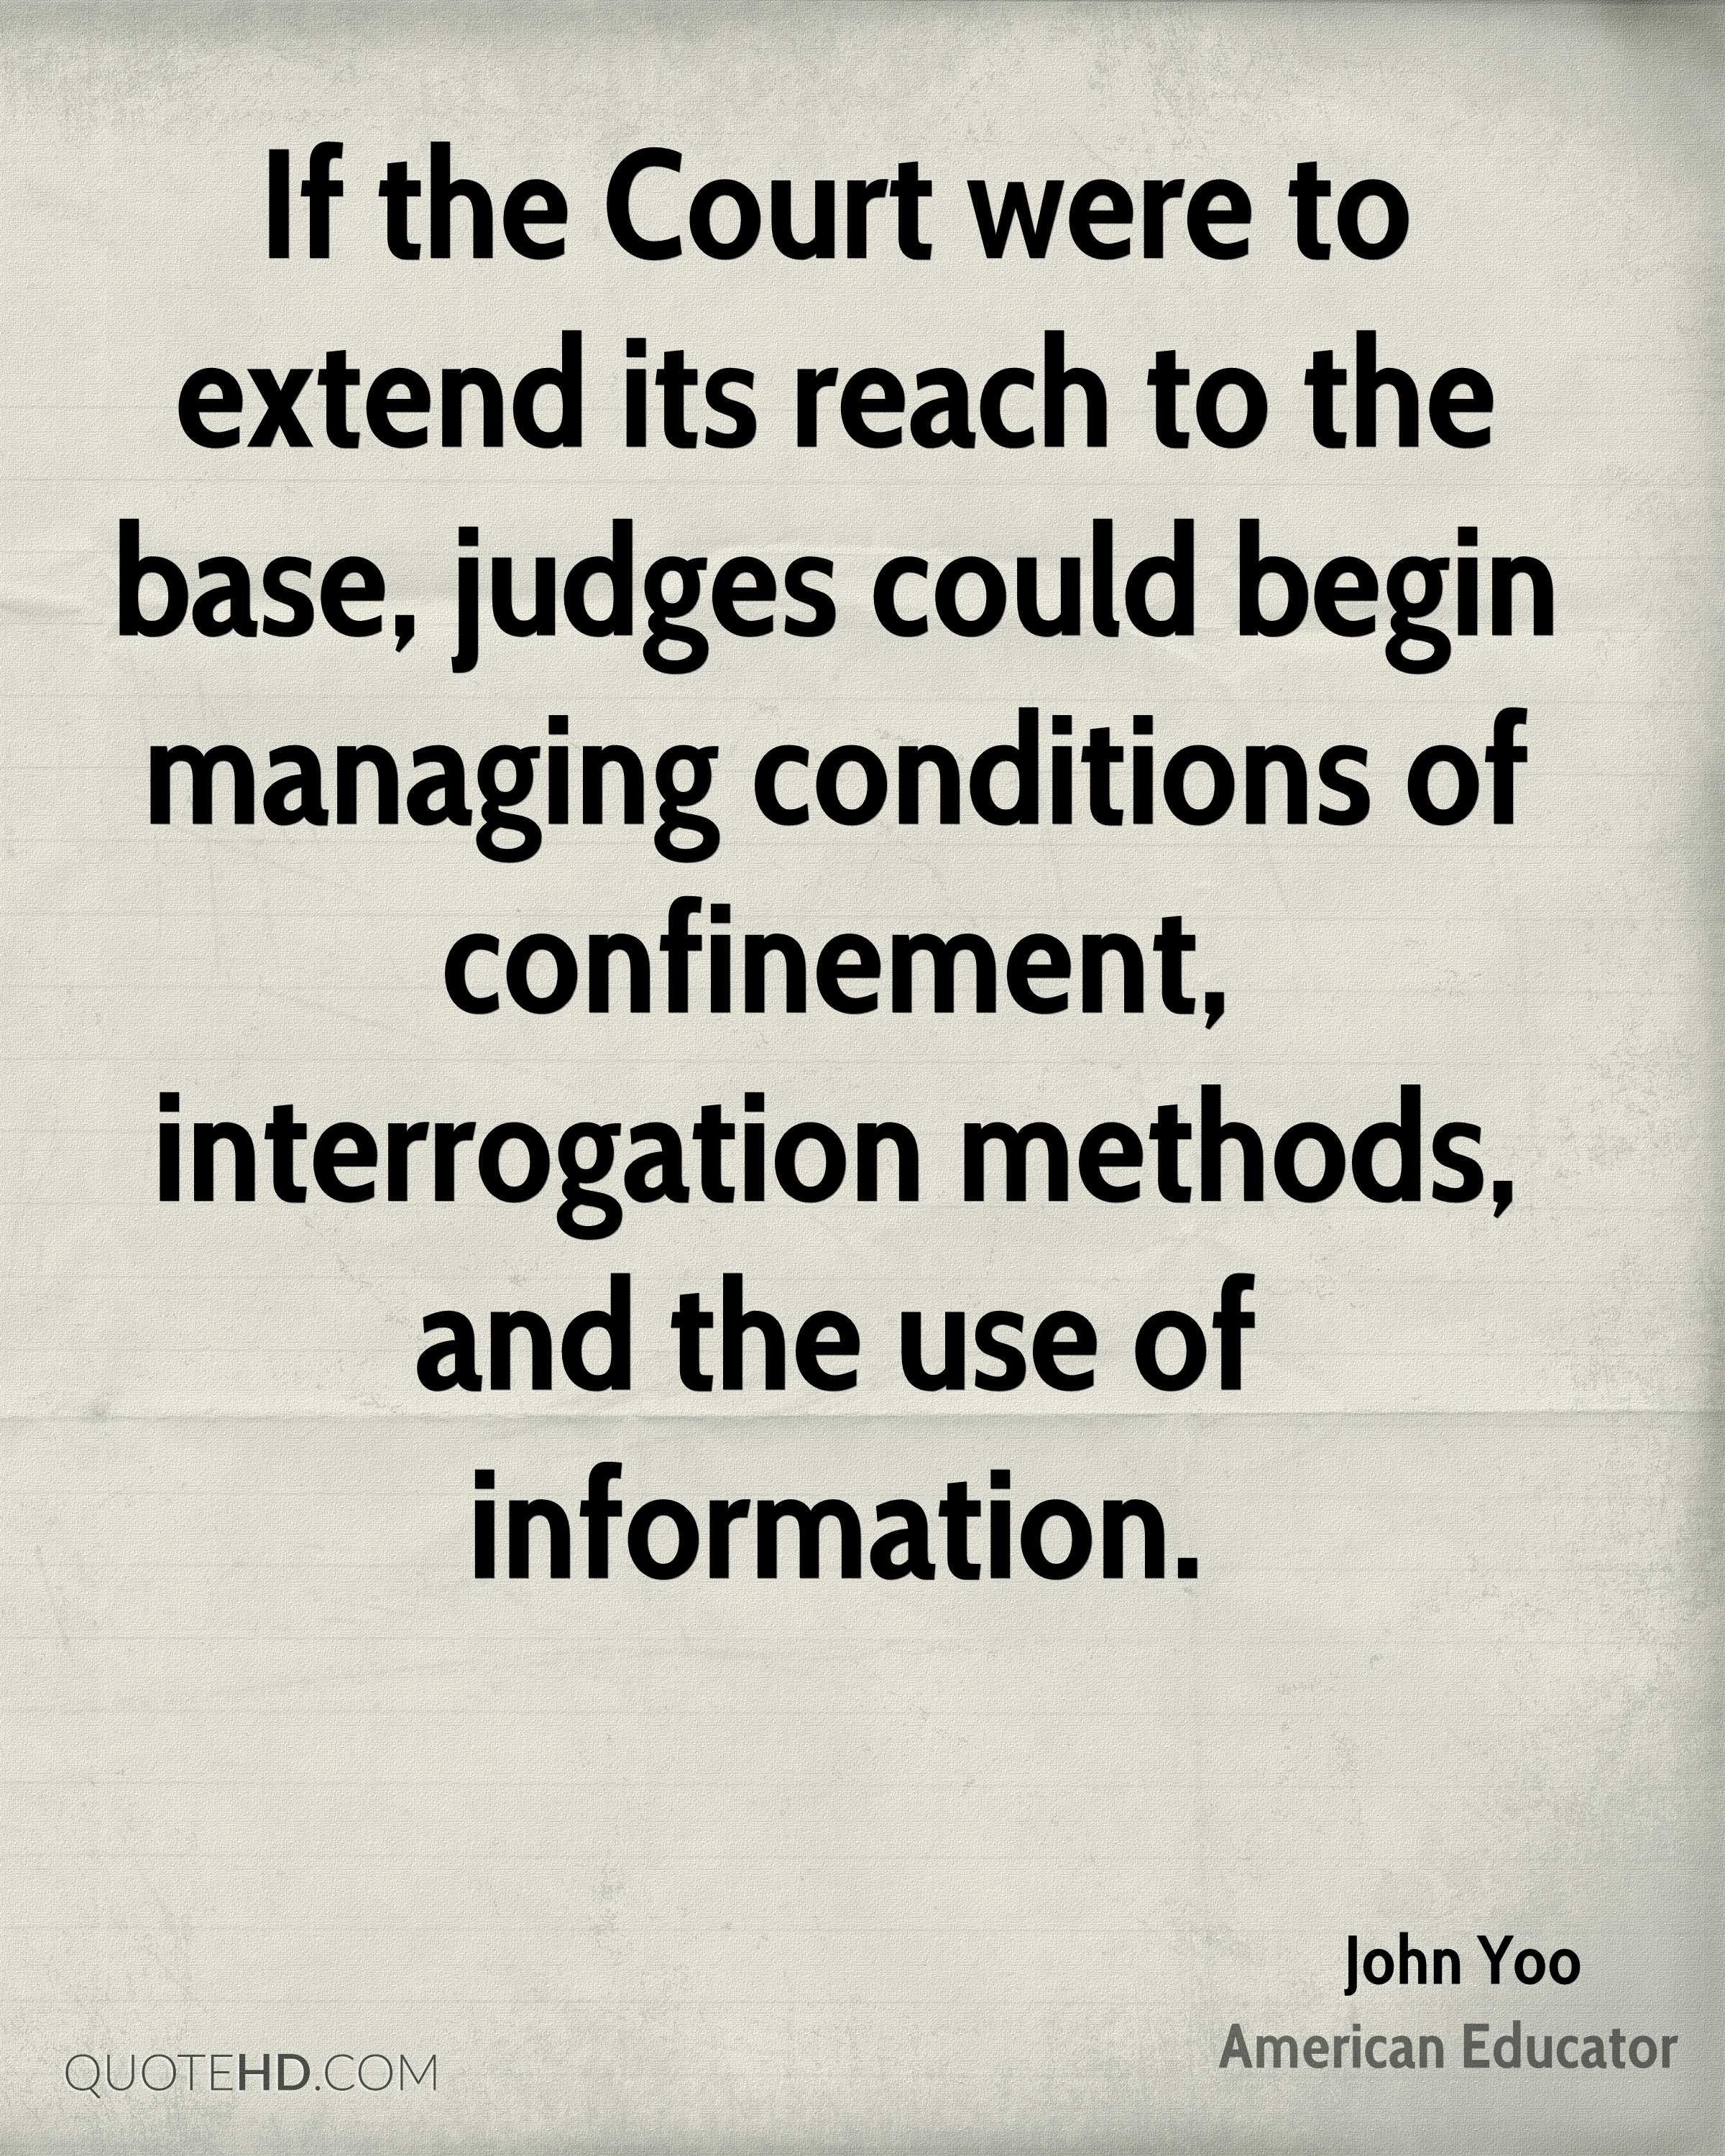 If the Court were to extend its reach to the base, judges could begin managing conditions of confinement, interrogation methods, and the use of information.